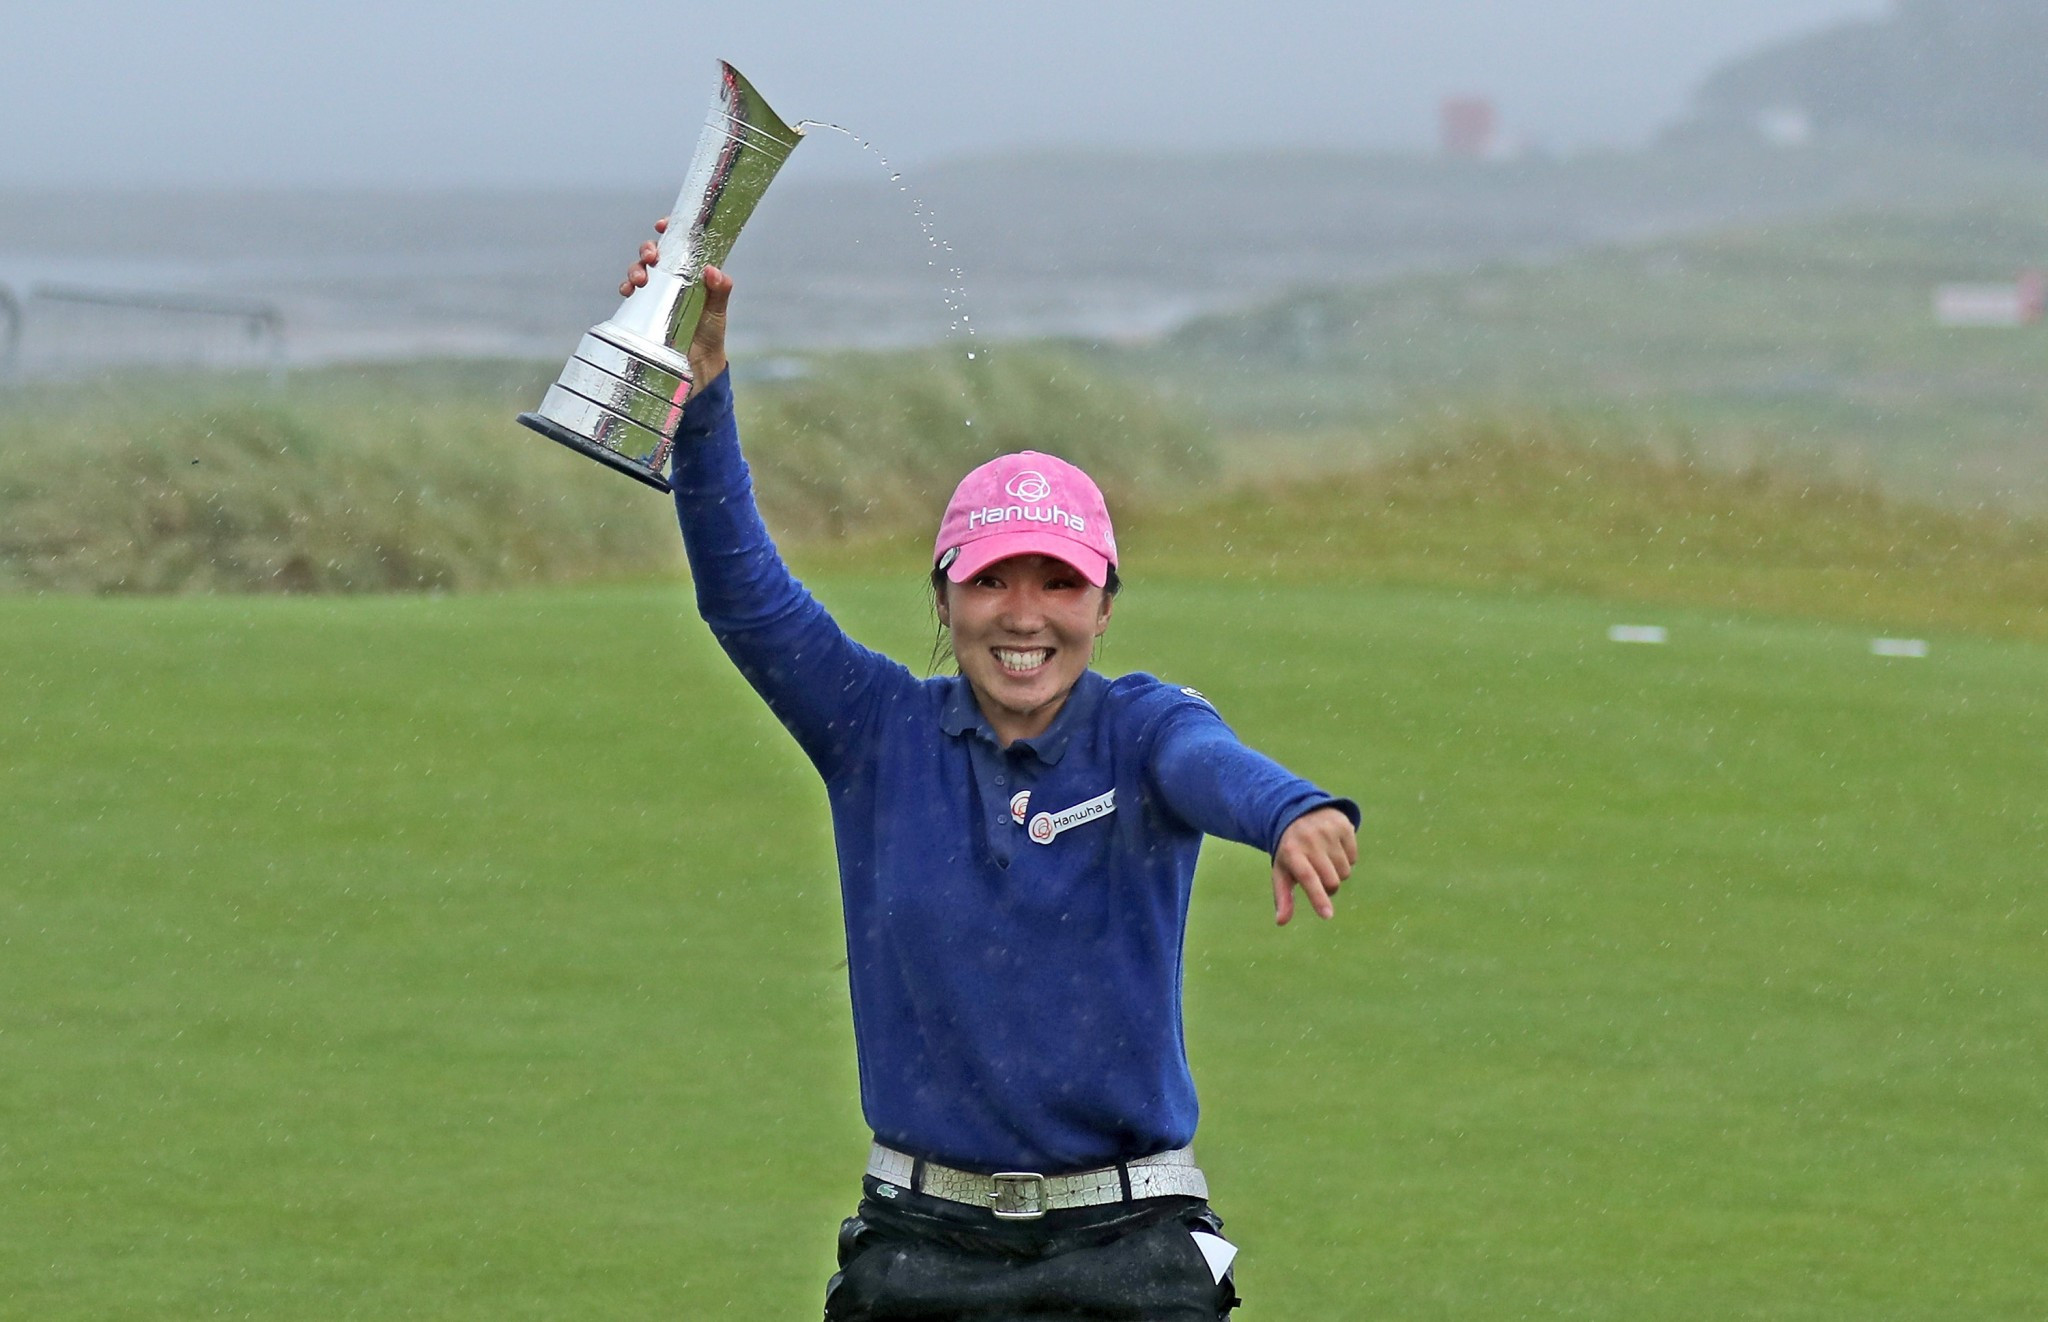 Kim clinches victory at Women's British Open